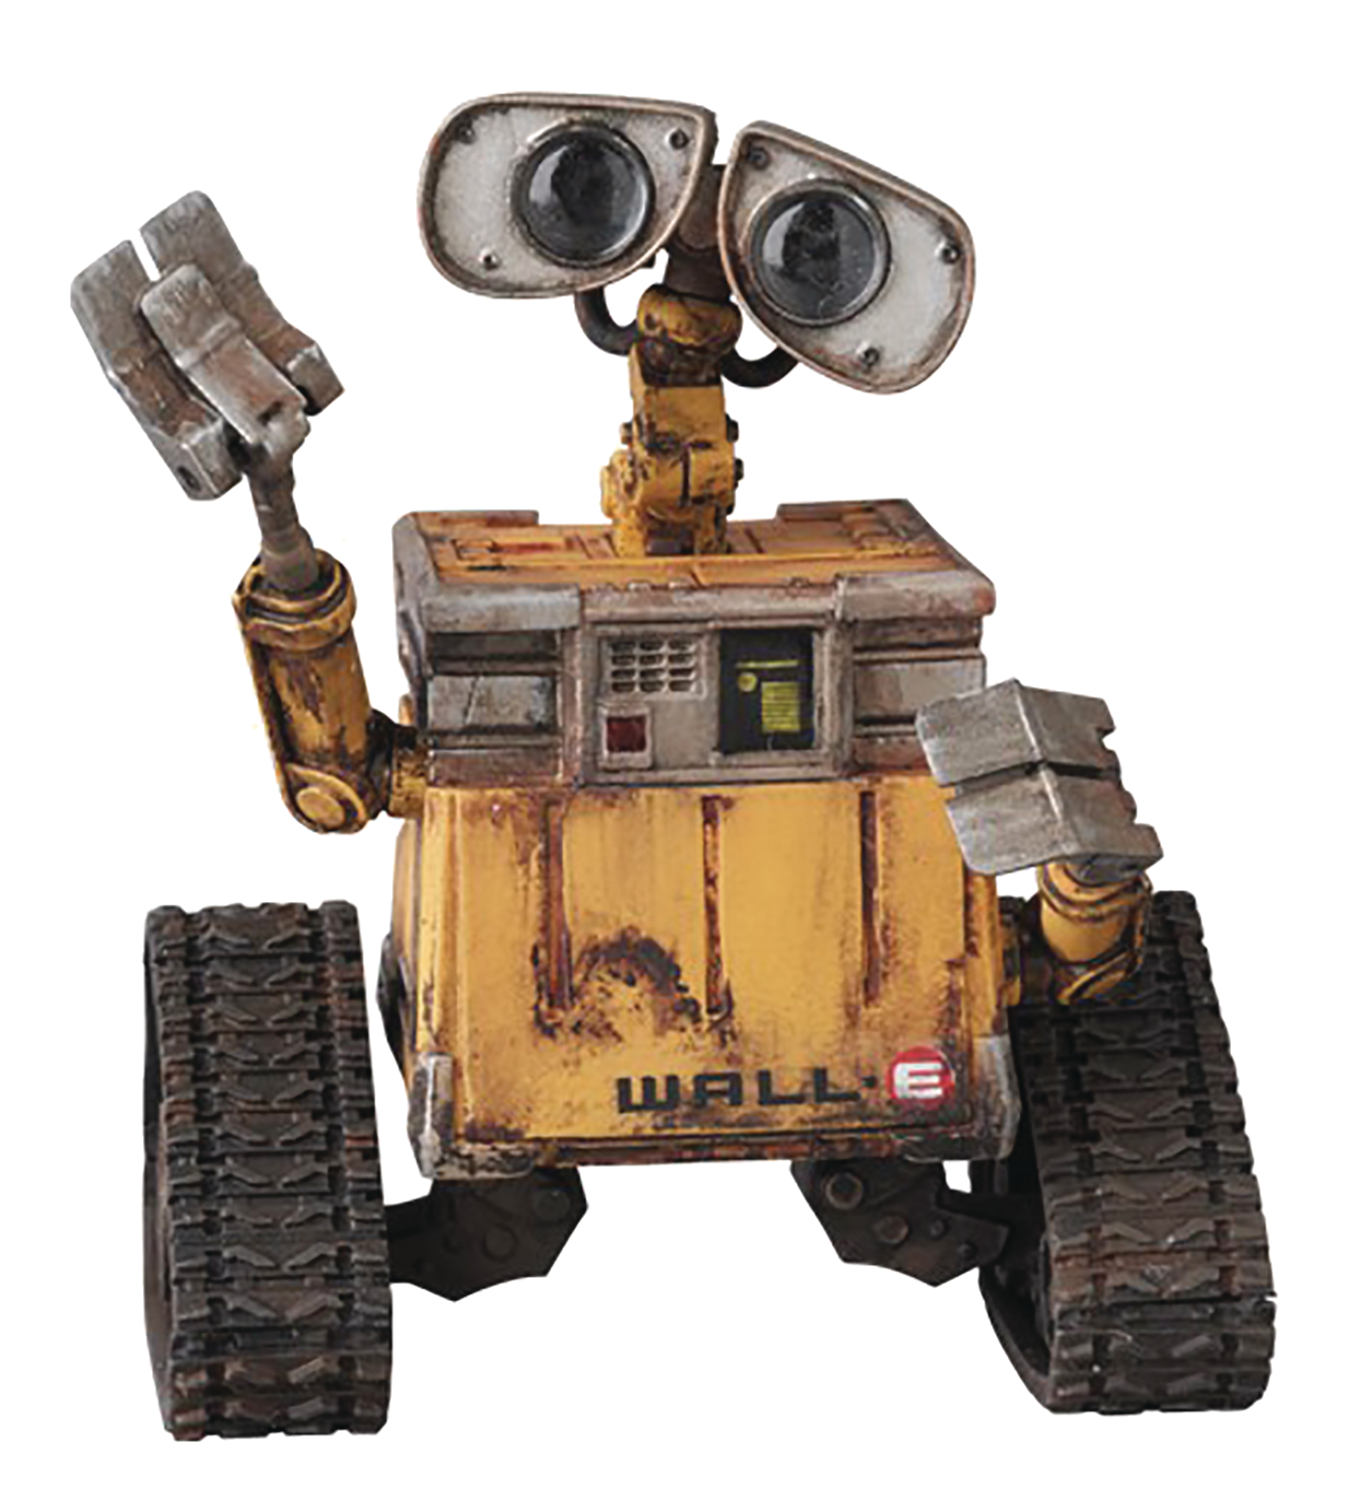 DISNEY PIXAR WALL-E UDF FIG RENEWAL VER